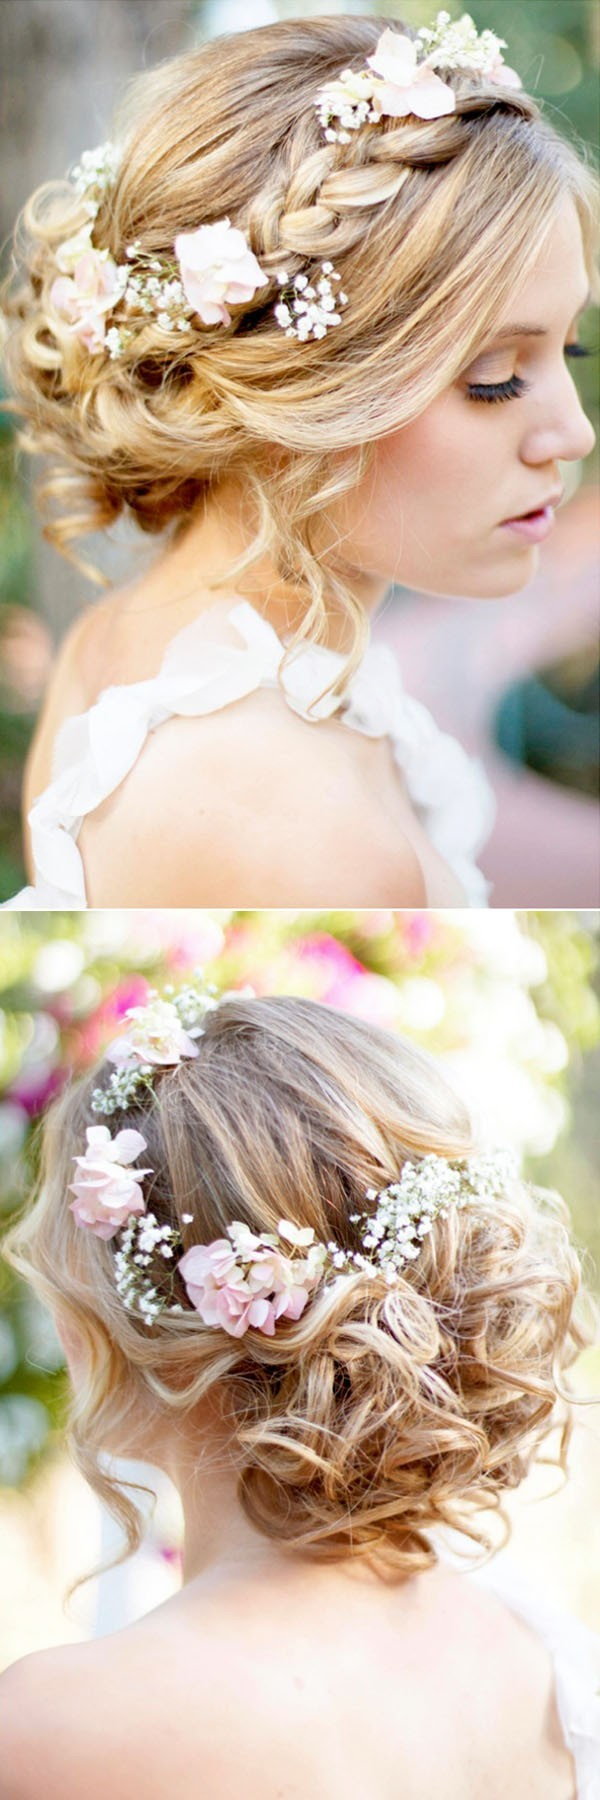 18 Trending Wedding Hairstyles with Flowers  Oh Best Day Ever